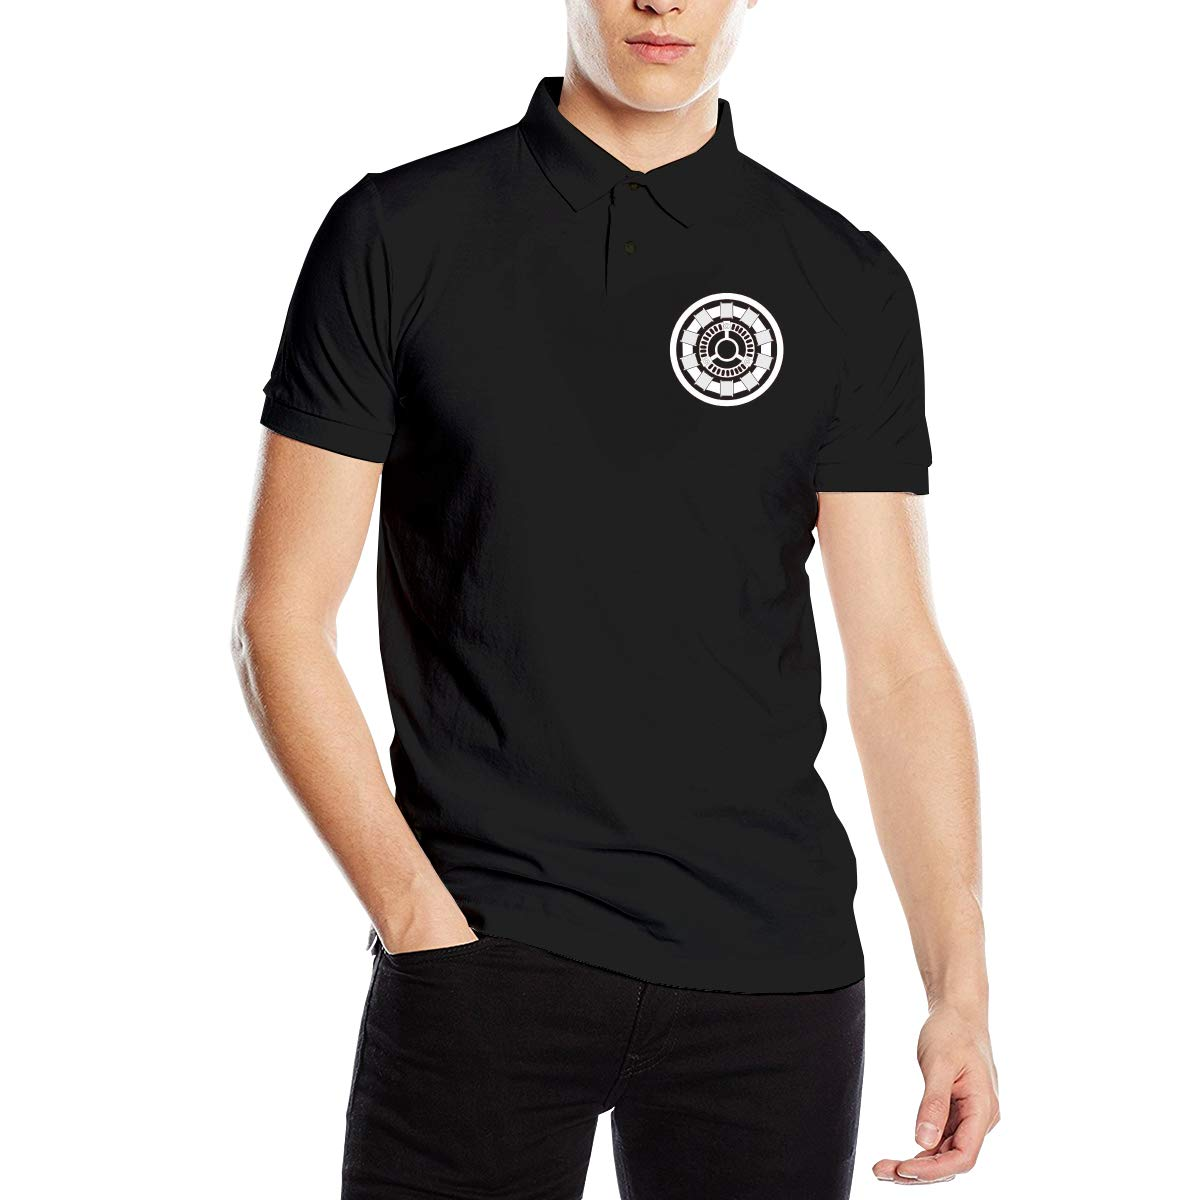 Runxin New Personalized Iron Man Fashion Polo T-Shirt Short Sleeve for Male Black